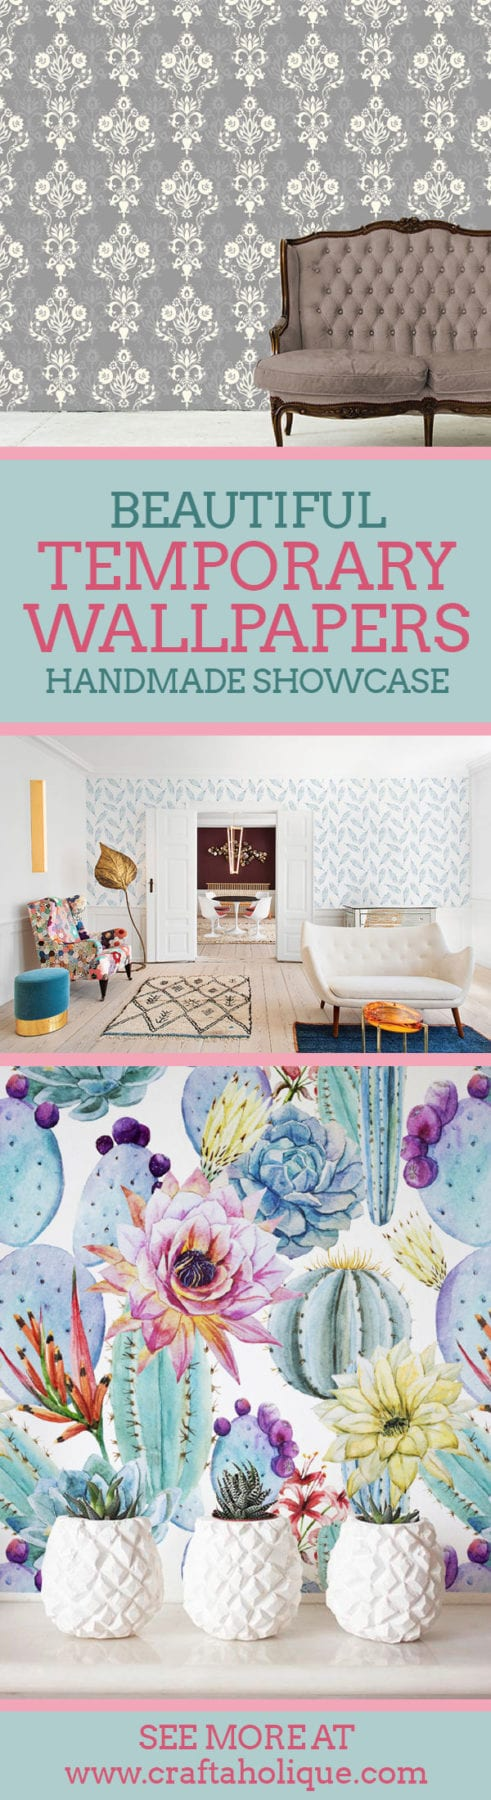 Beautiful temporary removable wallpapers - handmade on Etsy